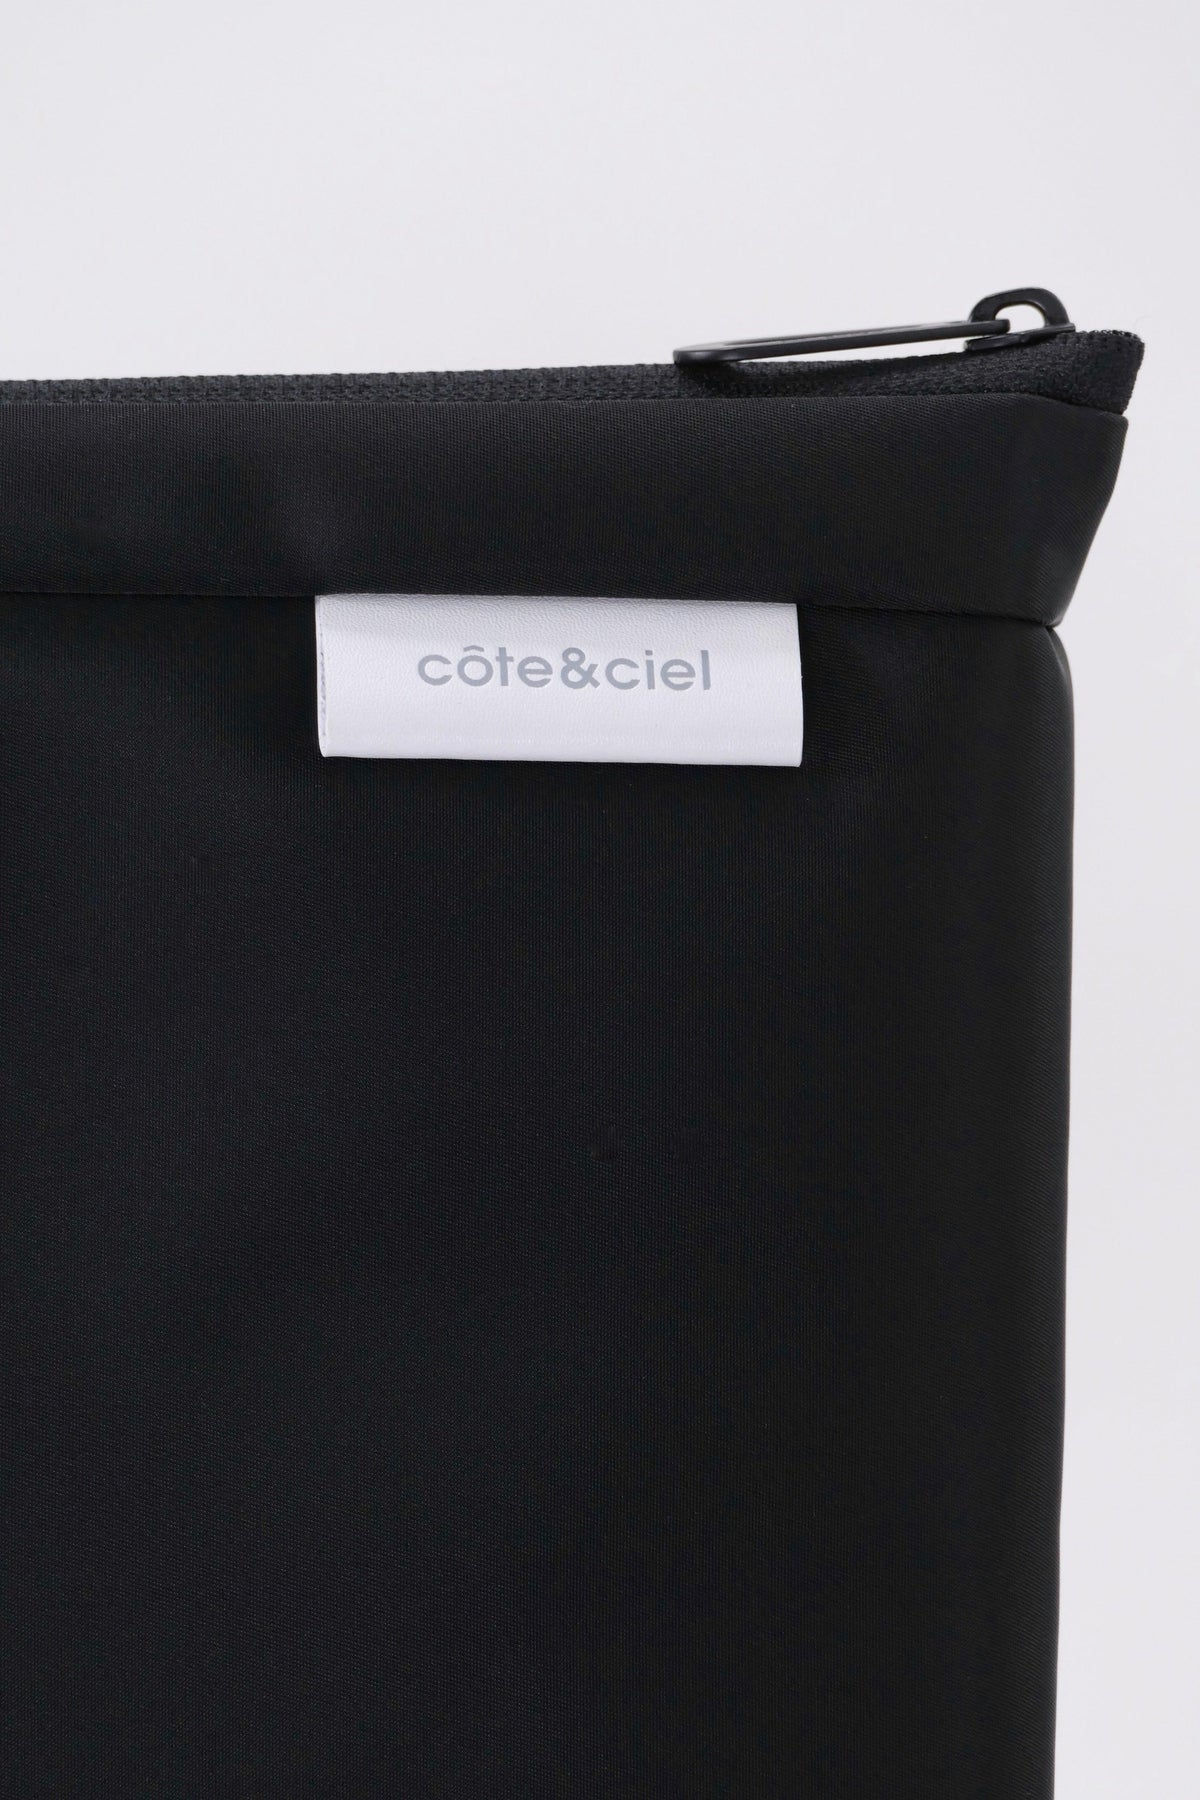 côte&ciel Zaan Bag Black